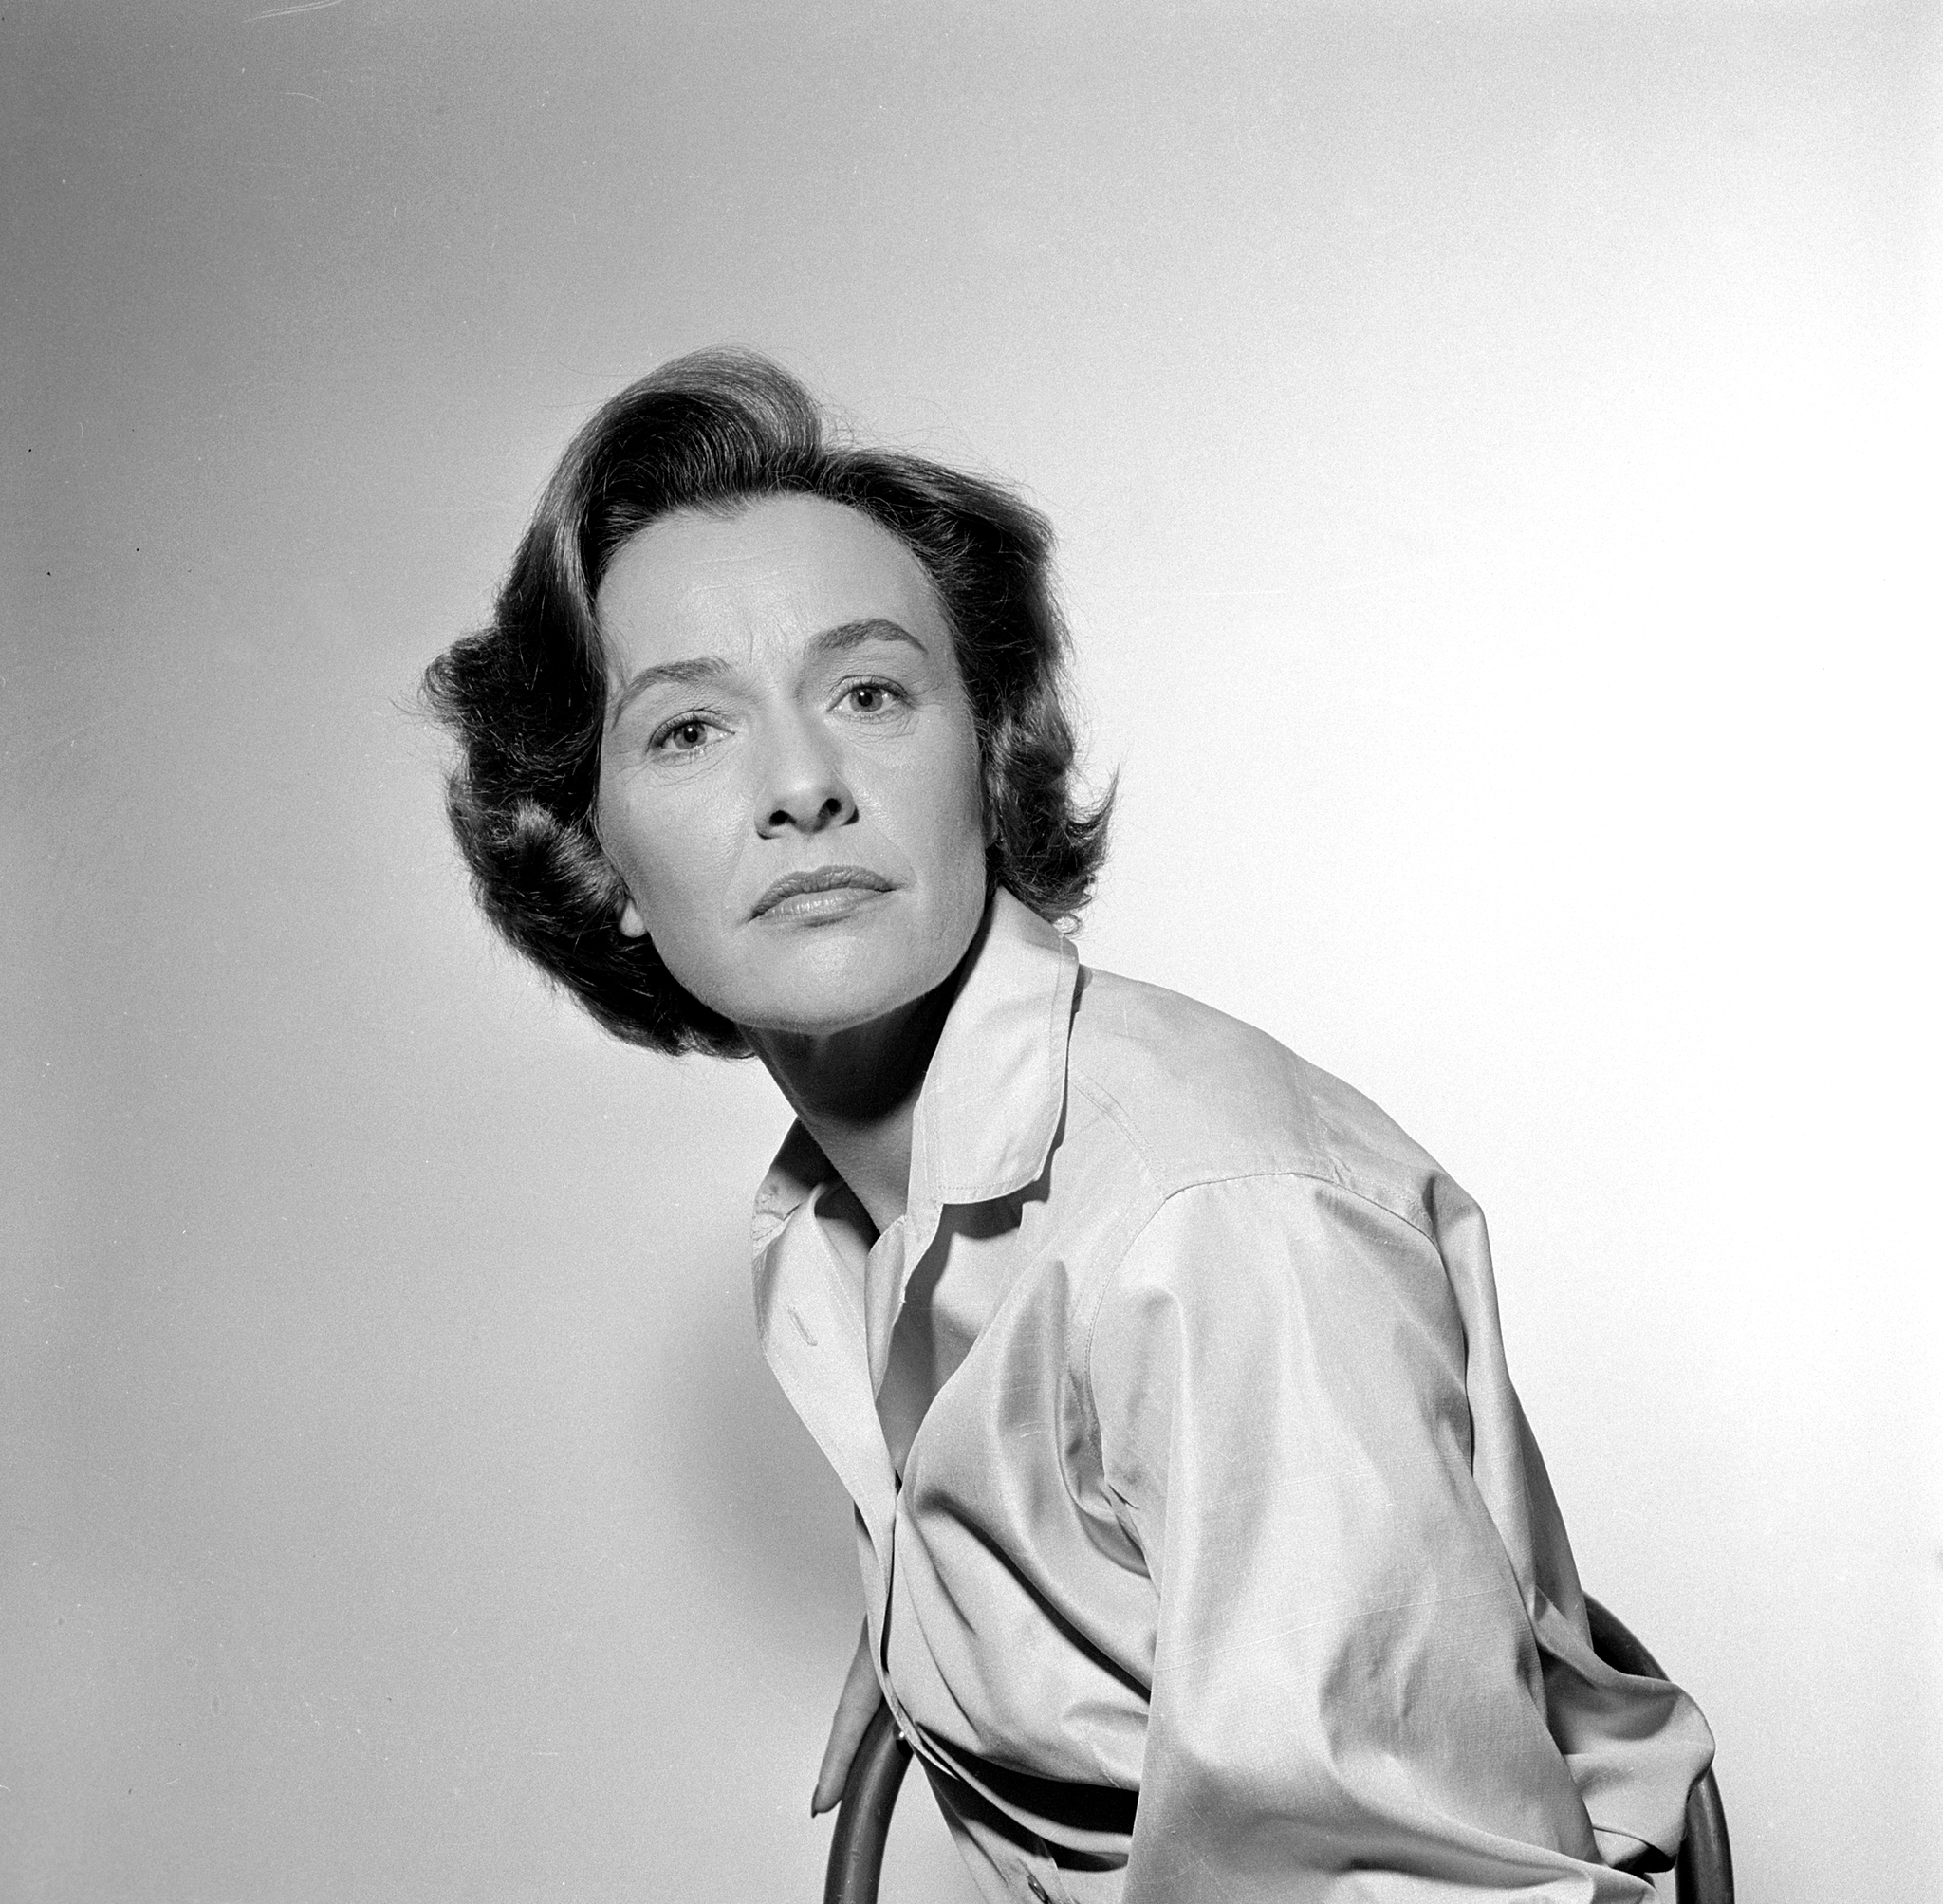 images Mary Lawson (actress)